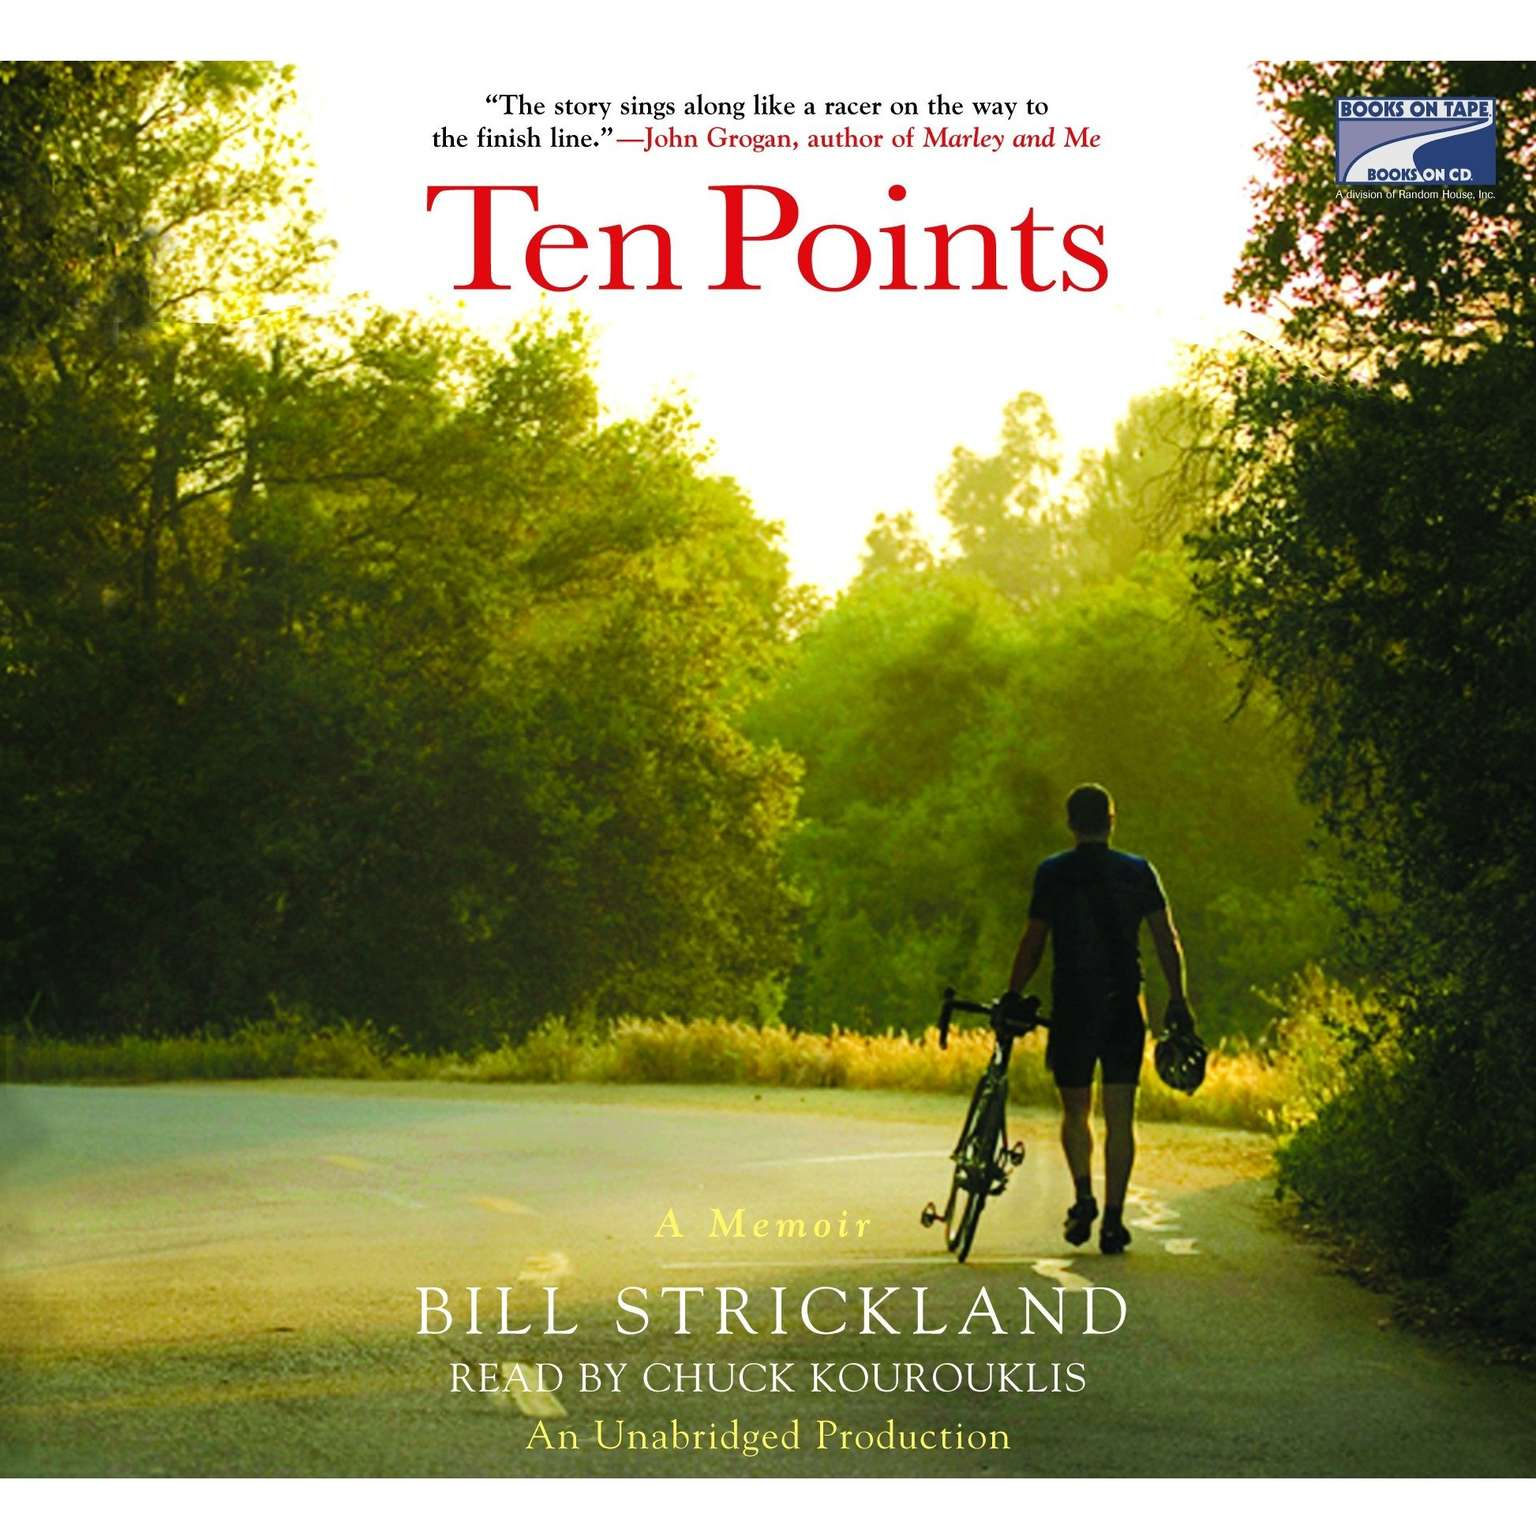 Printable Ten Points: A Father's Promise, a Daughter's Wish - How a Magical Season of Bicycle Riding Made it All Come True Audiobook Cover Art